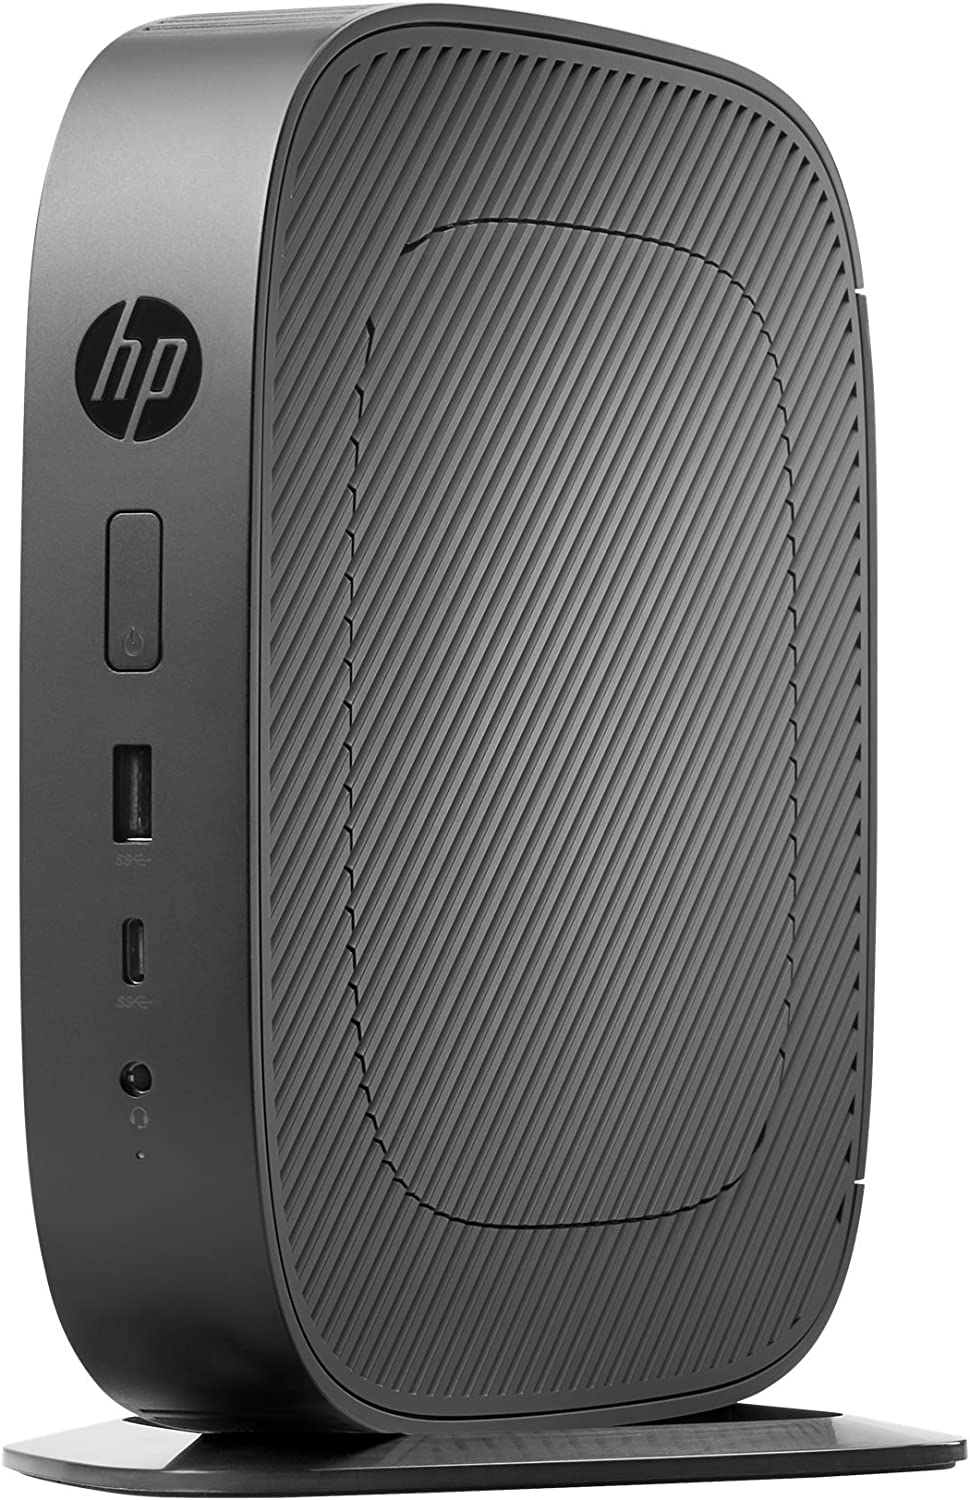 HP 1MV51UT#ABA T530 Thin Client Tower, 4GB RAM, 16GB Flash Storage, AMD Radeon R2, Black